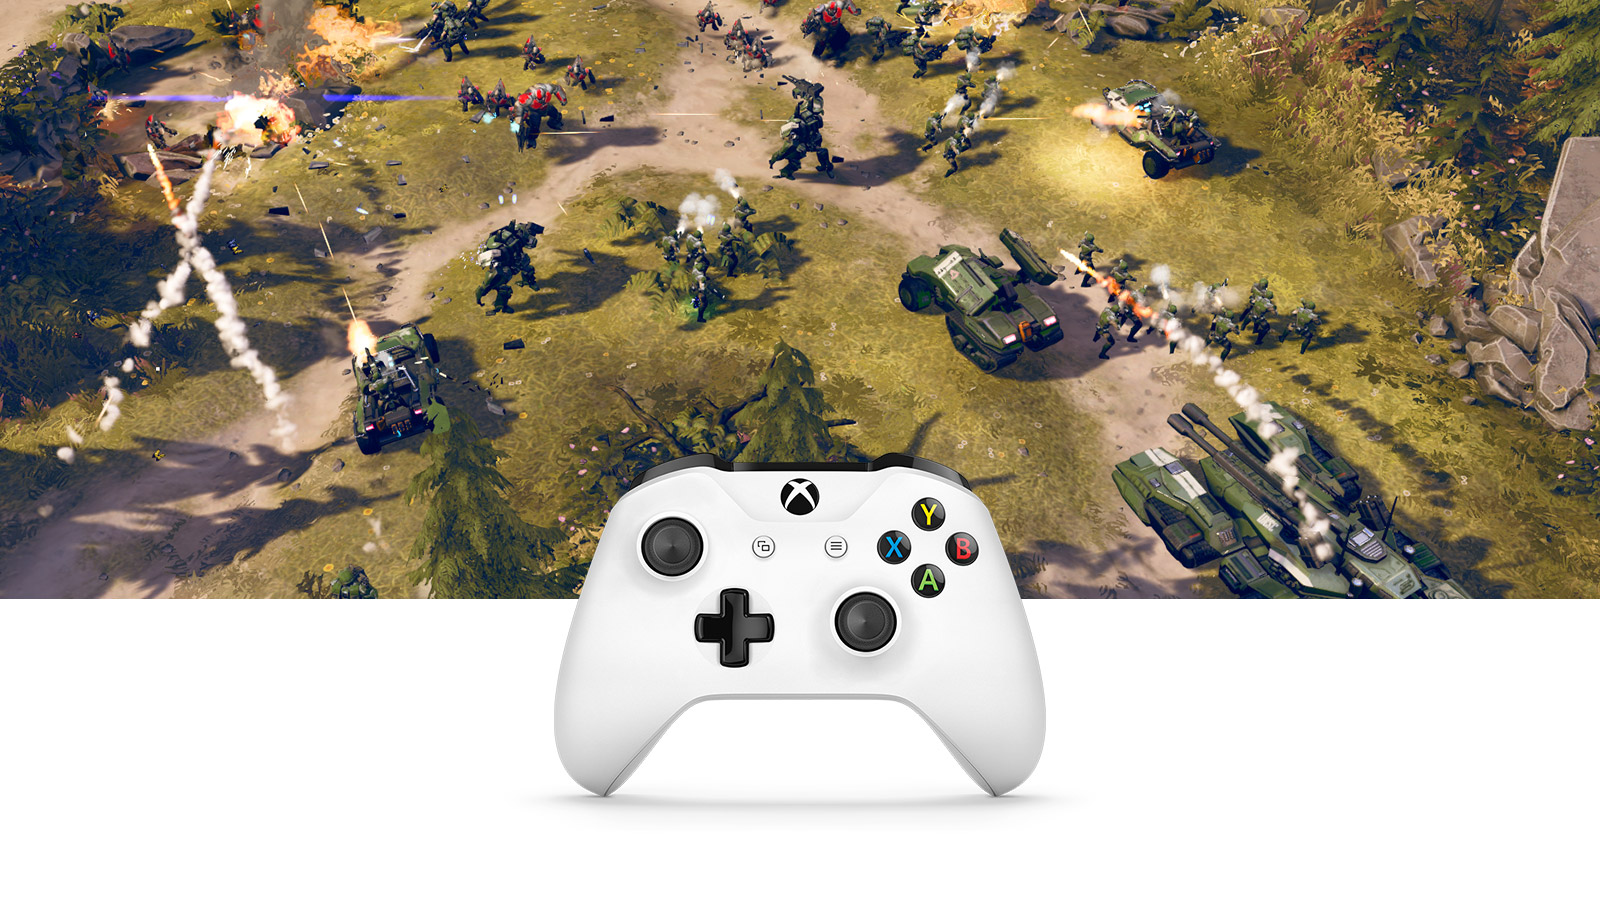 image of Halo Wars 2 gameplay and Xbox Wireless Controller